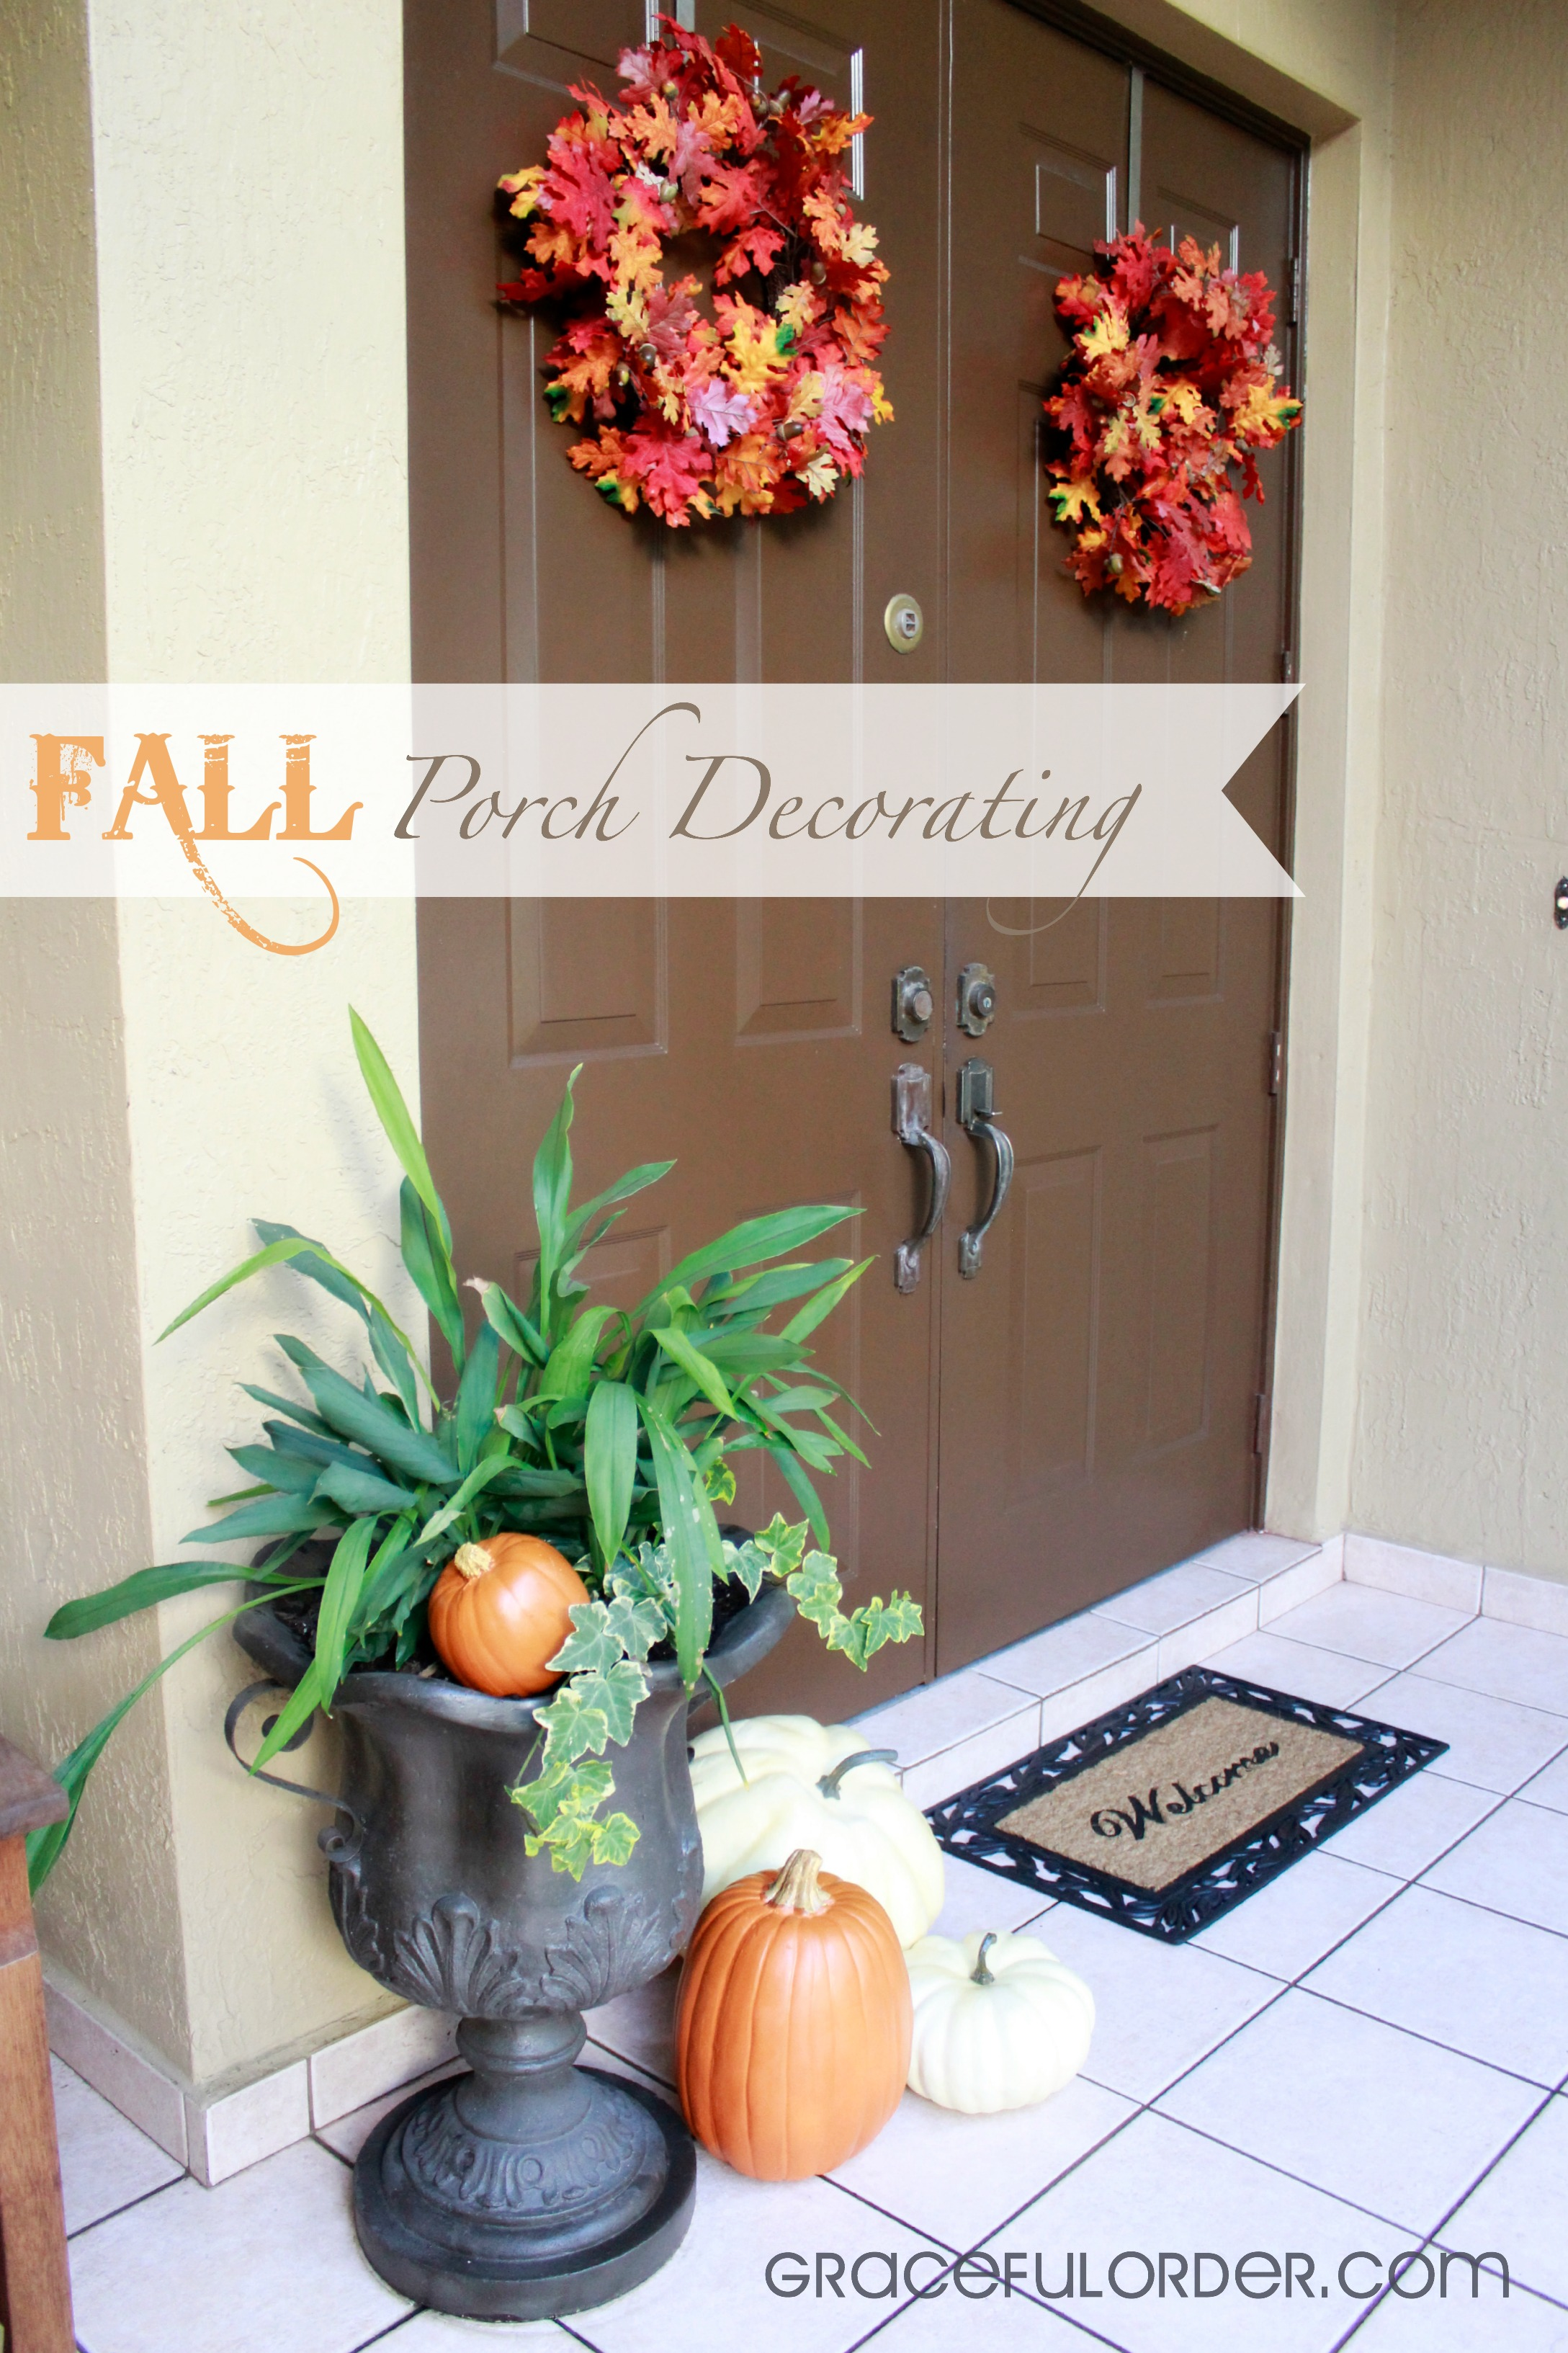 Fall porch decorating ideas pictures - Fall Porch Decorating Ideas